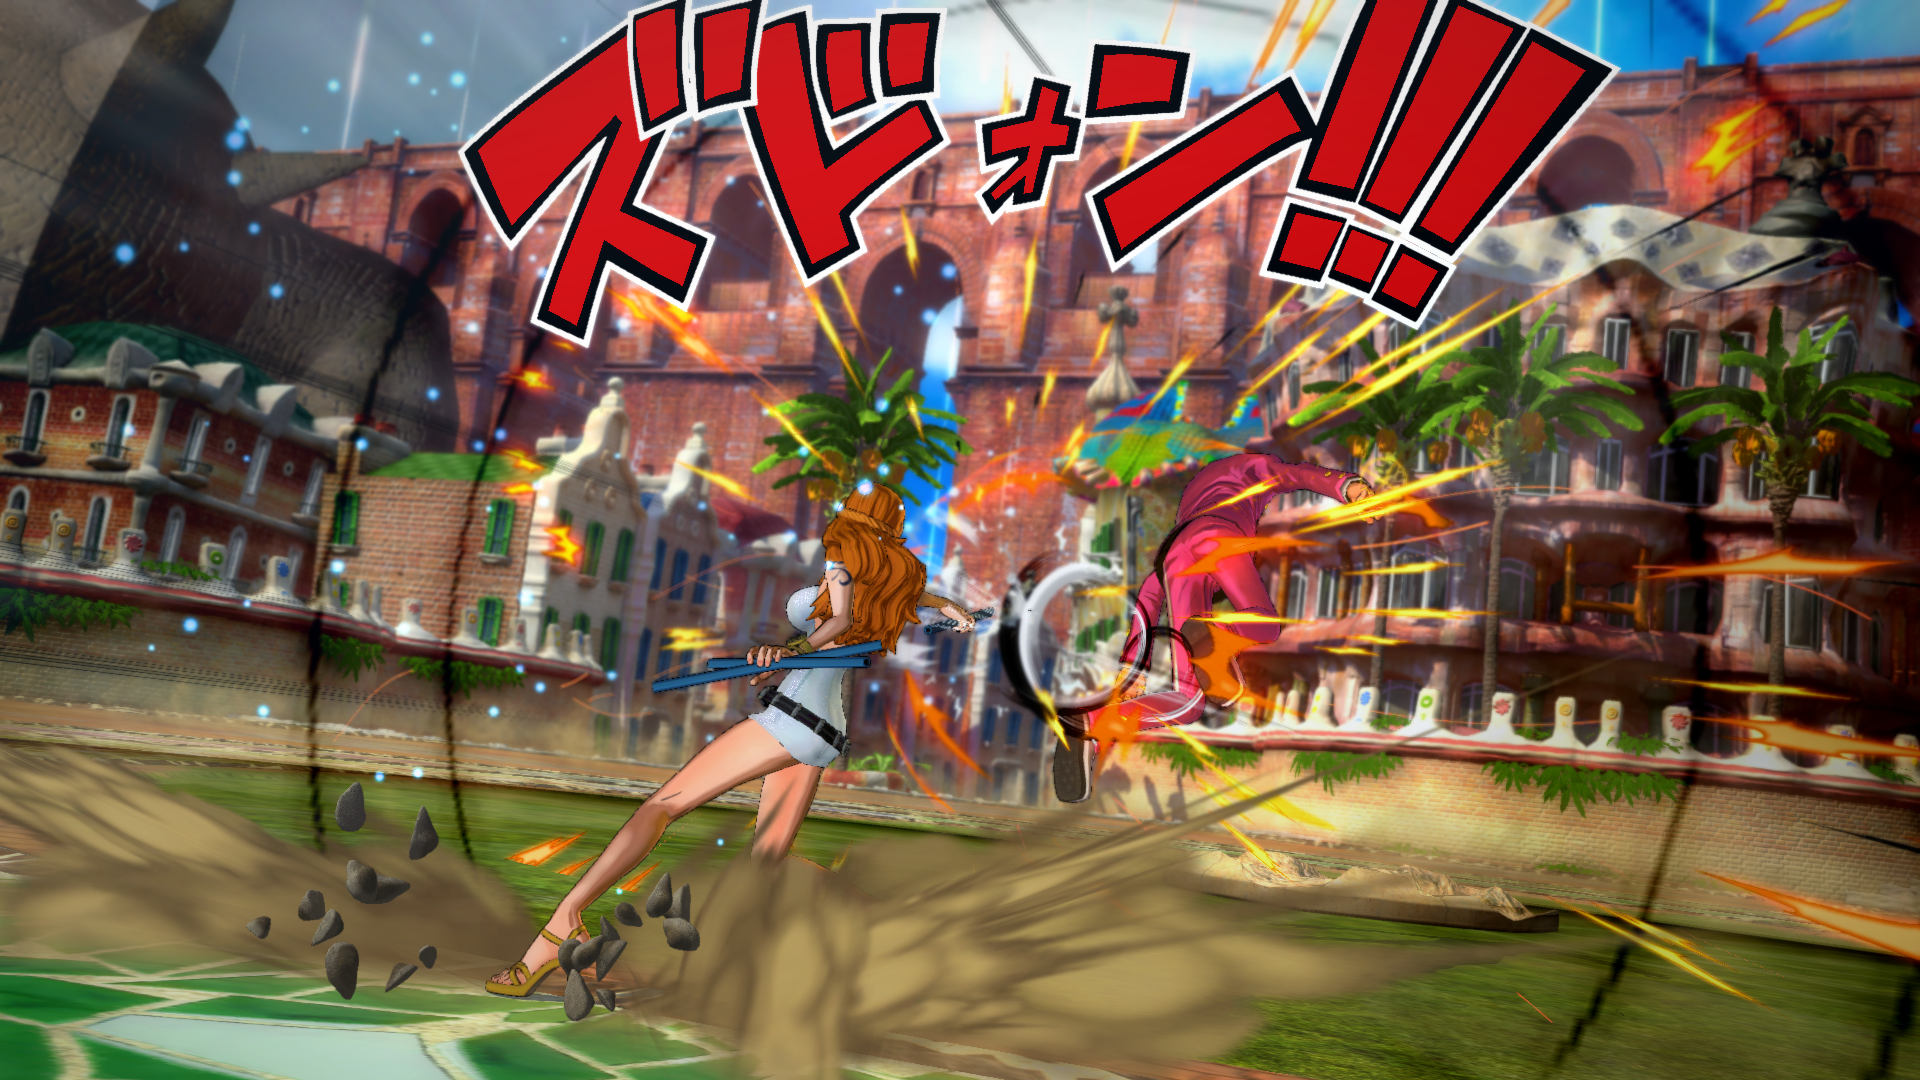 New One Piece Gold Inspired DLC Coming To Burning Blood